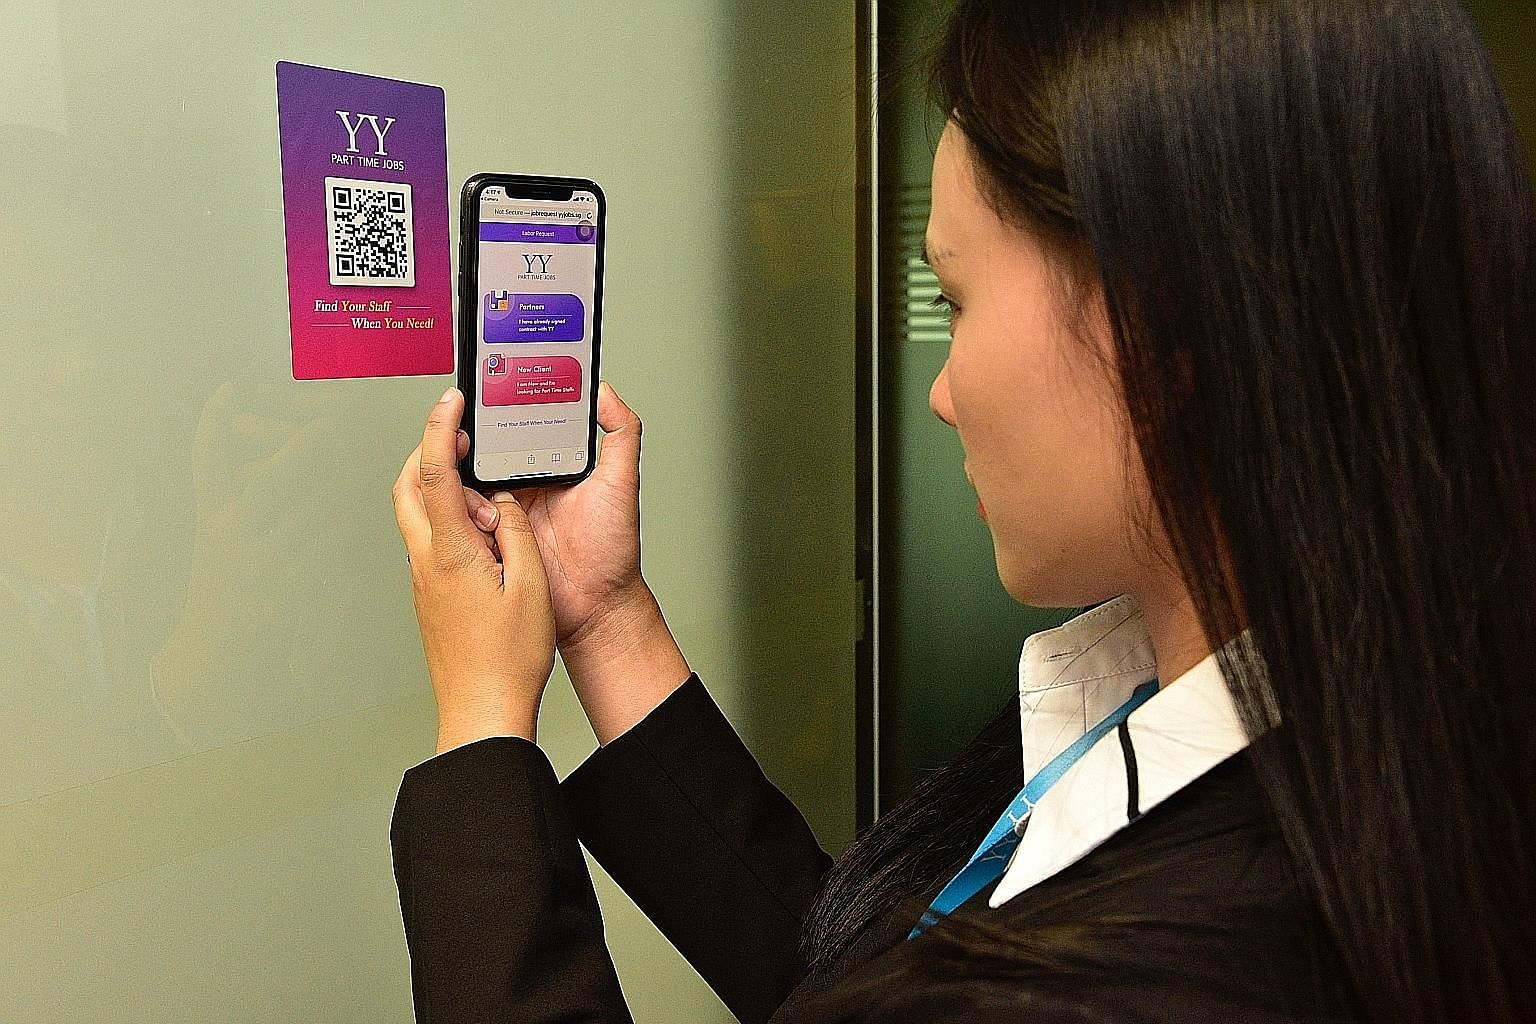 Ms Wendy Wang, IT manager from YY Hong Ye Group, scanning the company's QR code using the updated app in a demonstration yesterday.